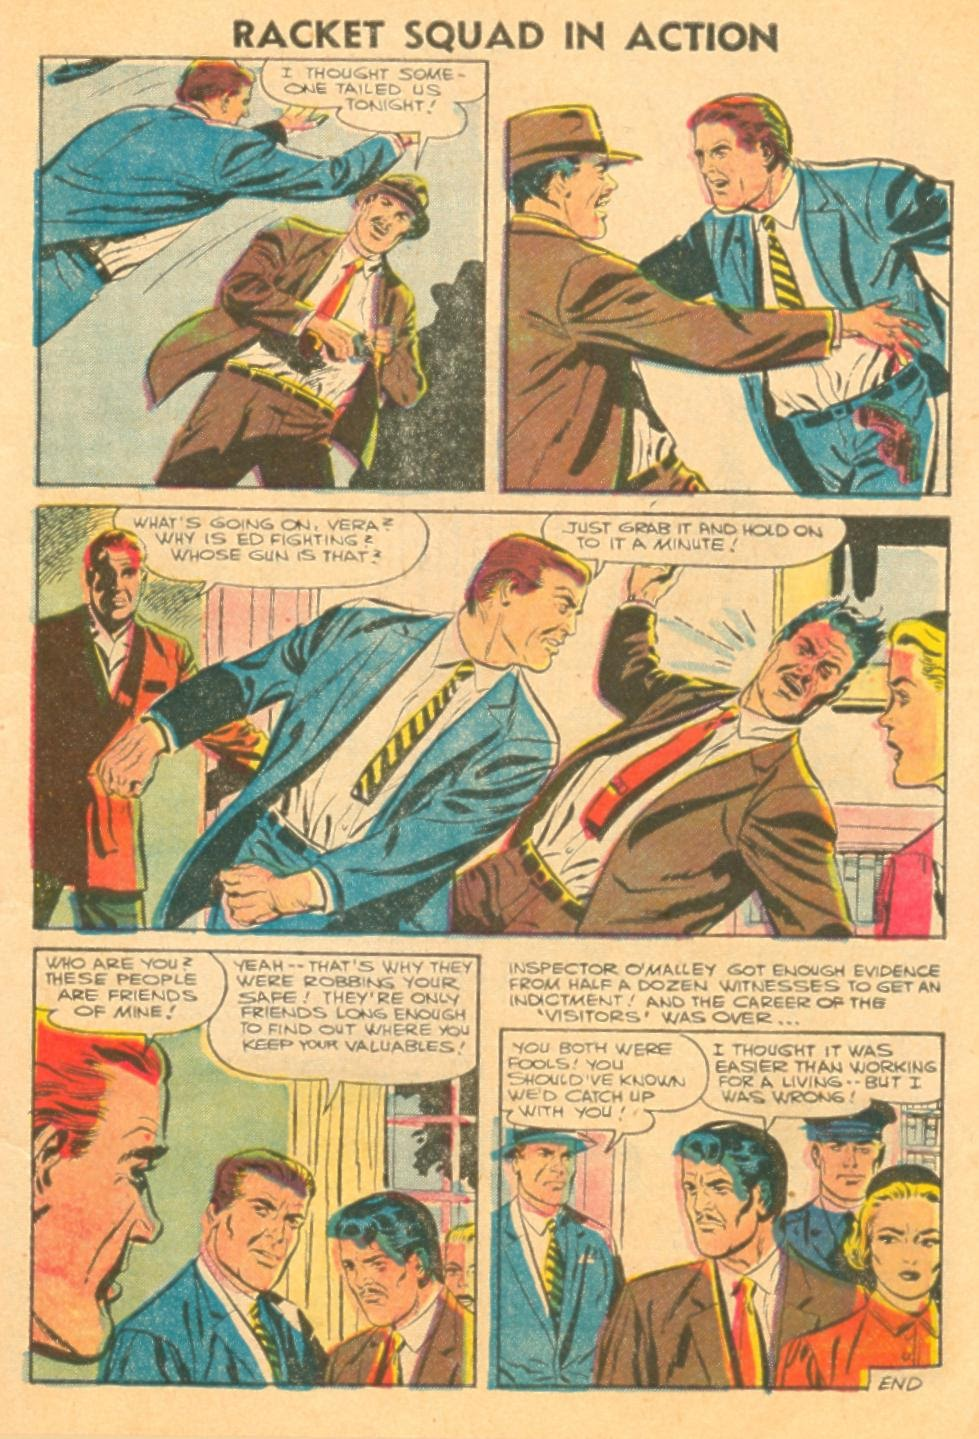 Read online Racket Squad in Action comic -  Issue #23 - 7